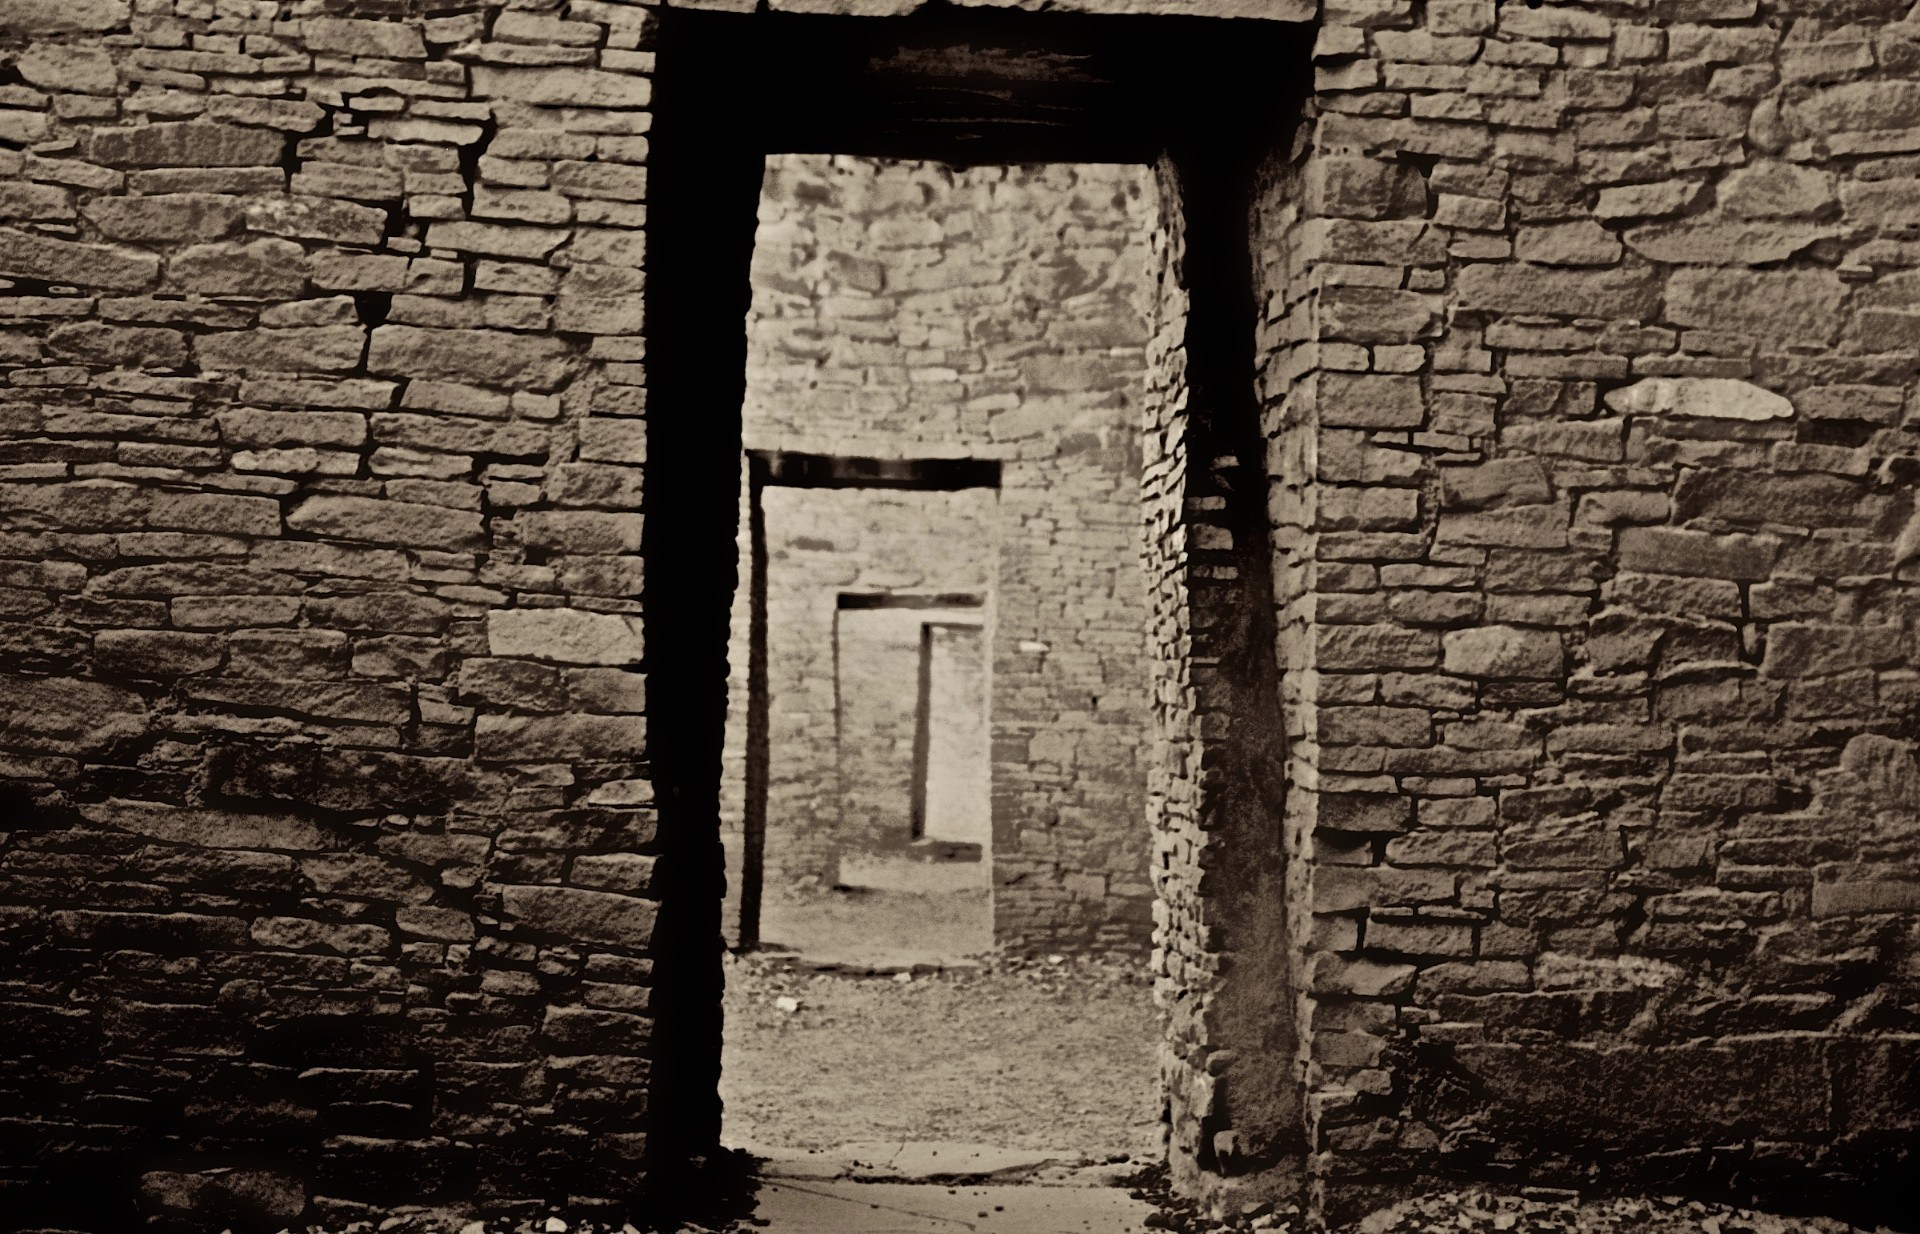 Pete_Madzelan-1-Doorways_To_The_Past